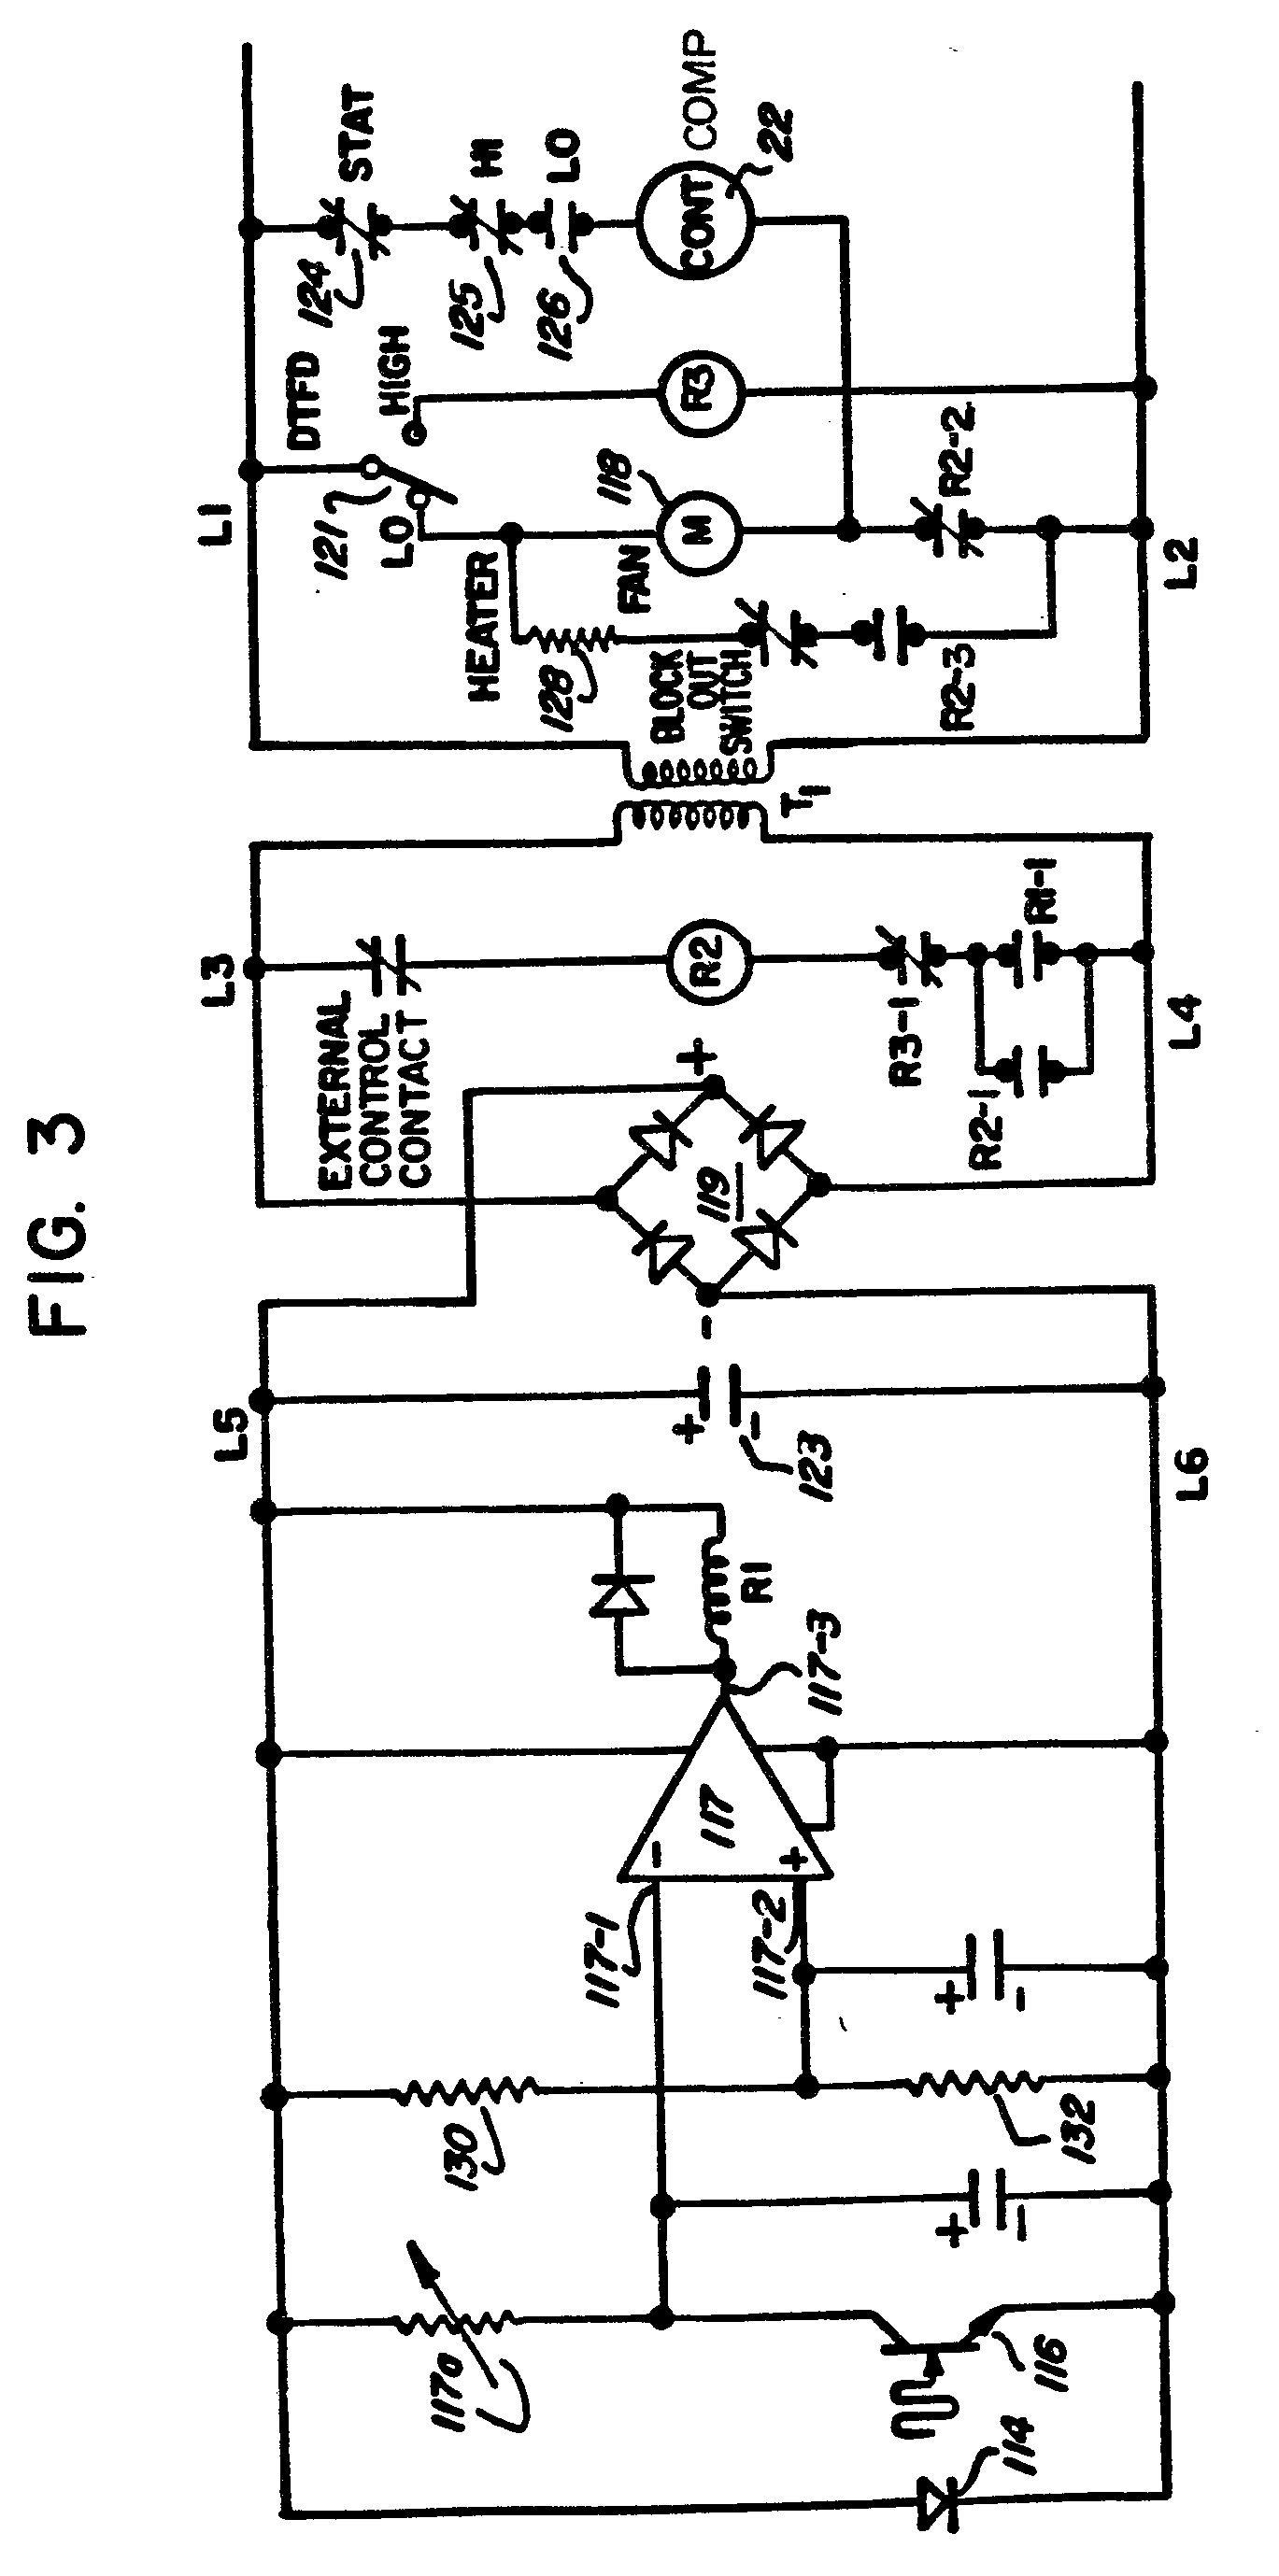 hight resolution of photo switch wiring schematic for lighting contactor